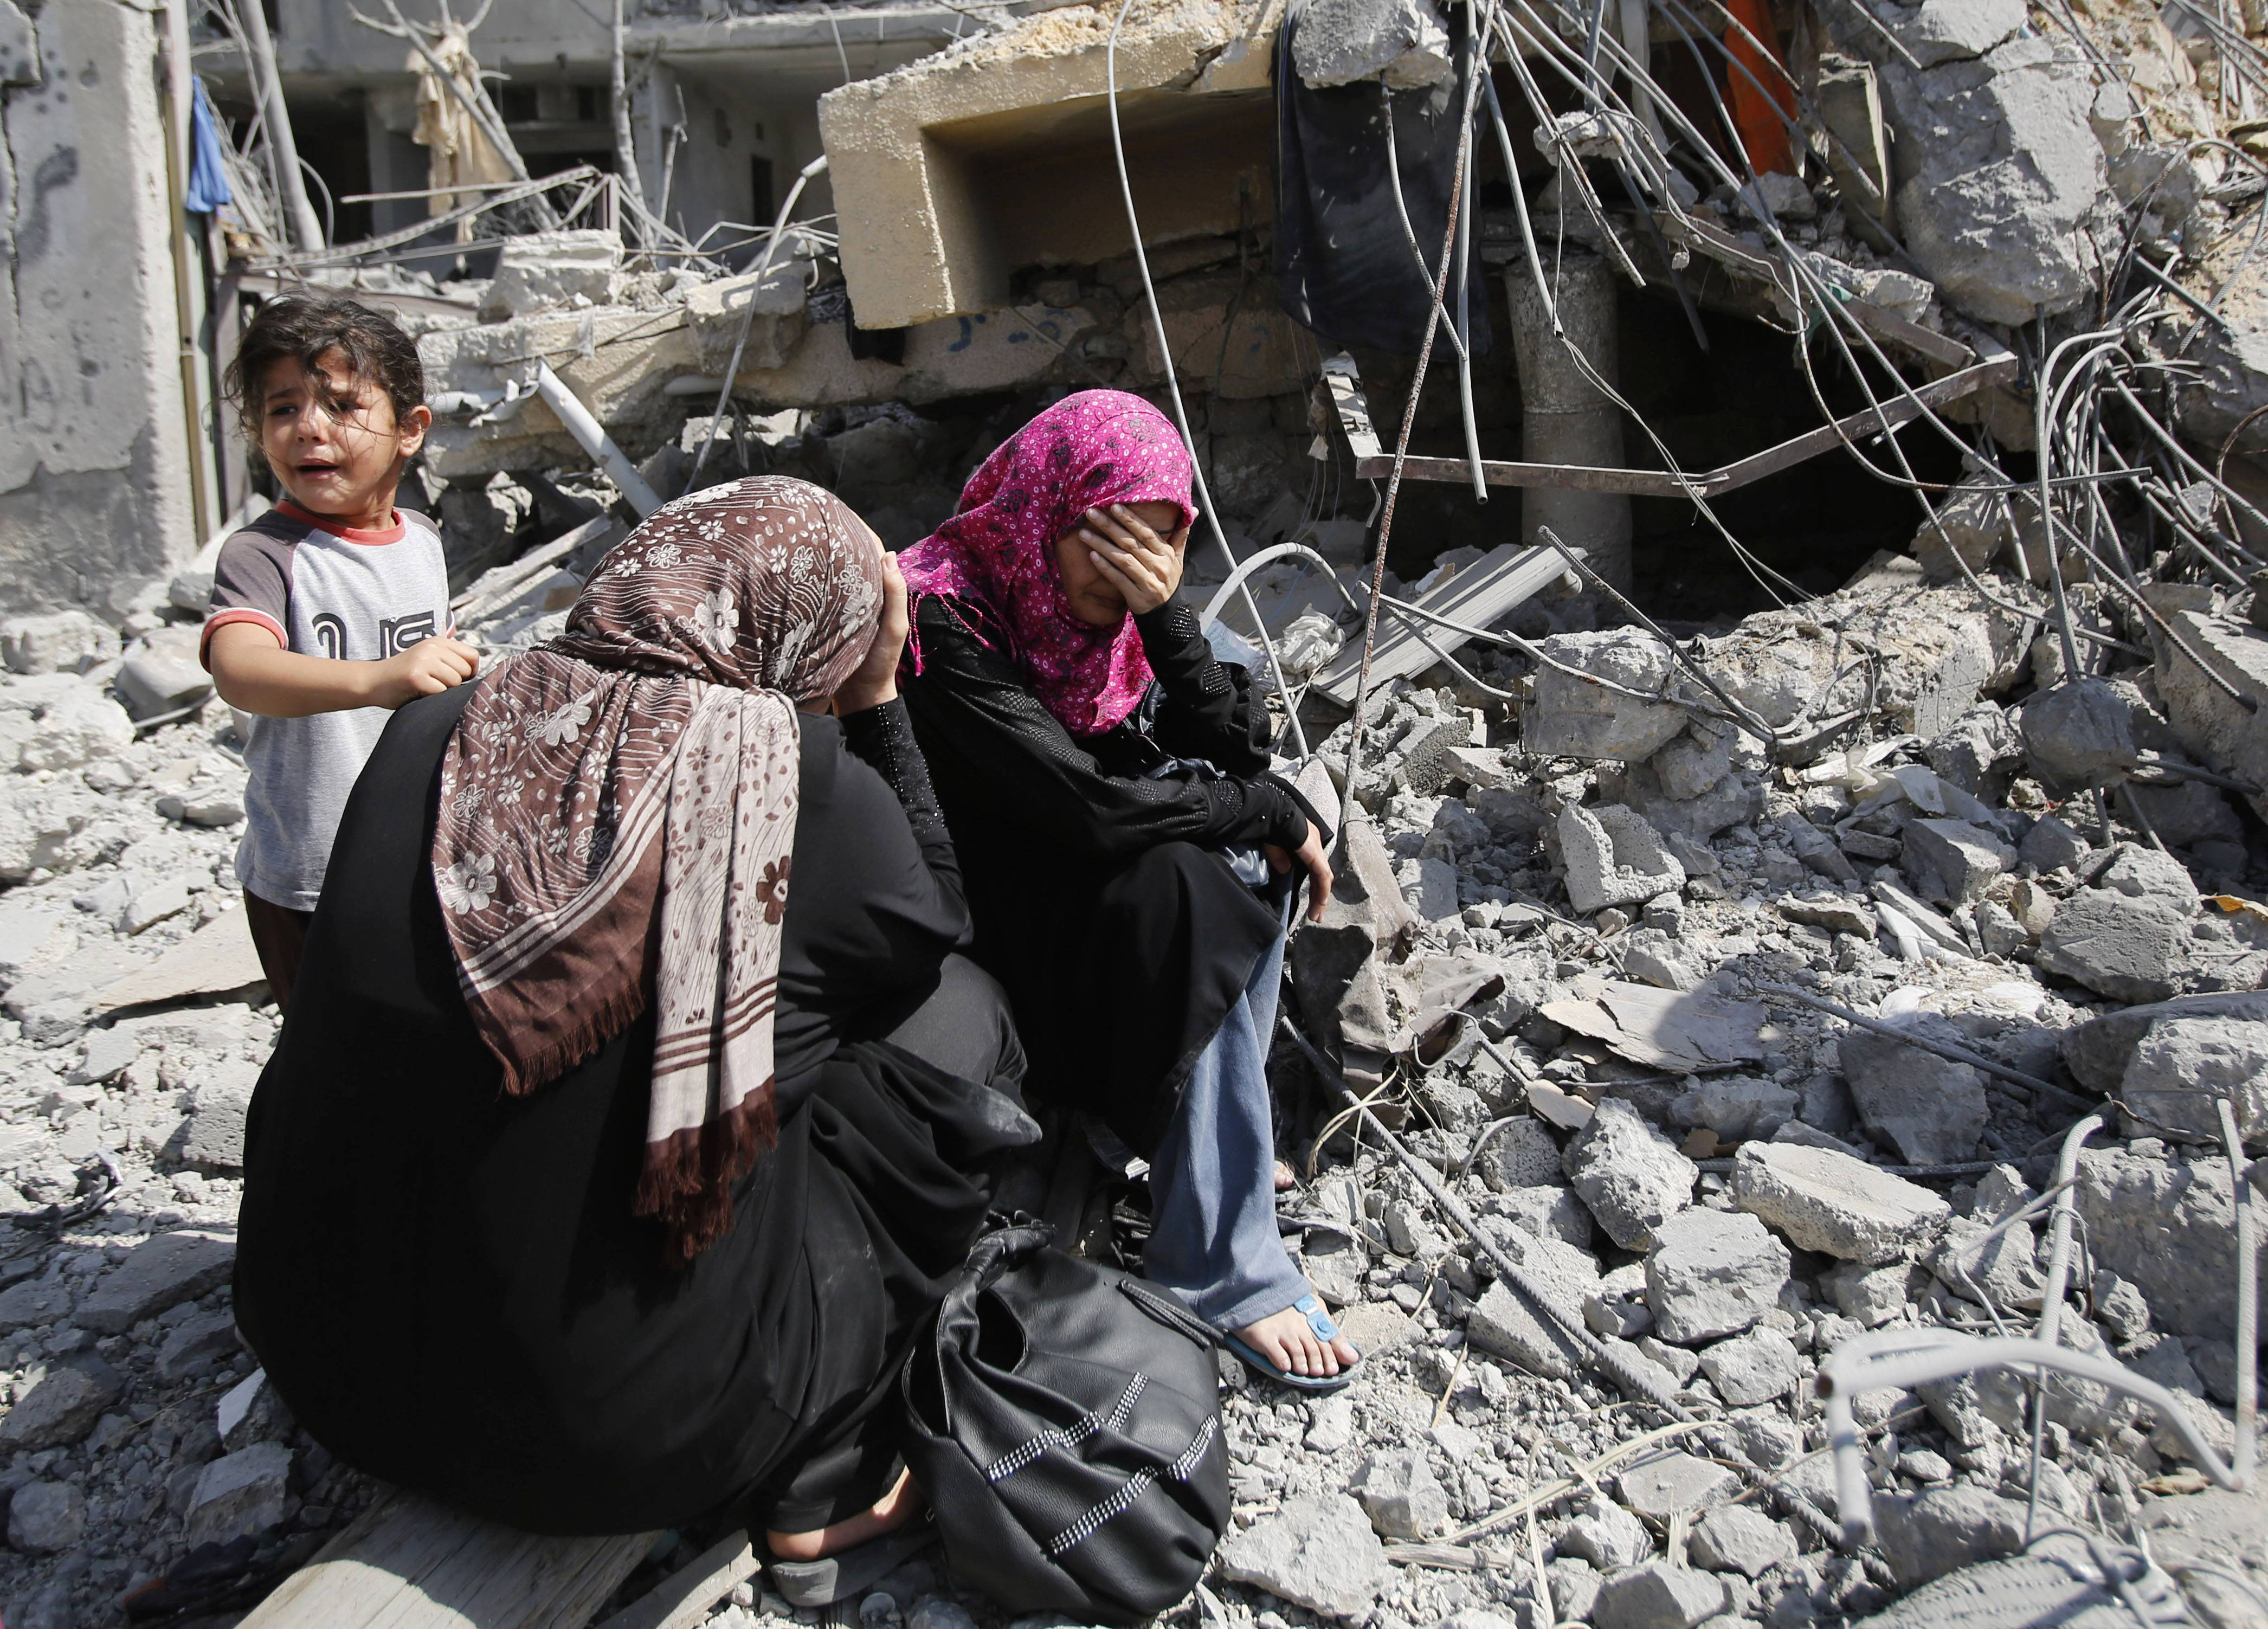 Palestinian women sit Friday on the rubble of their home in Beit Hanoun, Gaza Strip. A three-day Gaza cease-fire that began Friday quickly unraveled, with Israel and Hamas accusing each other of violating the truce.